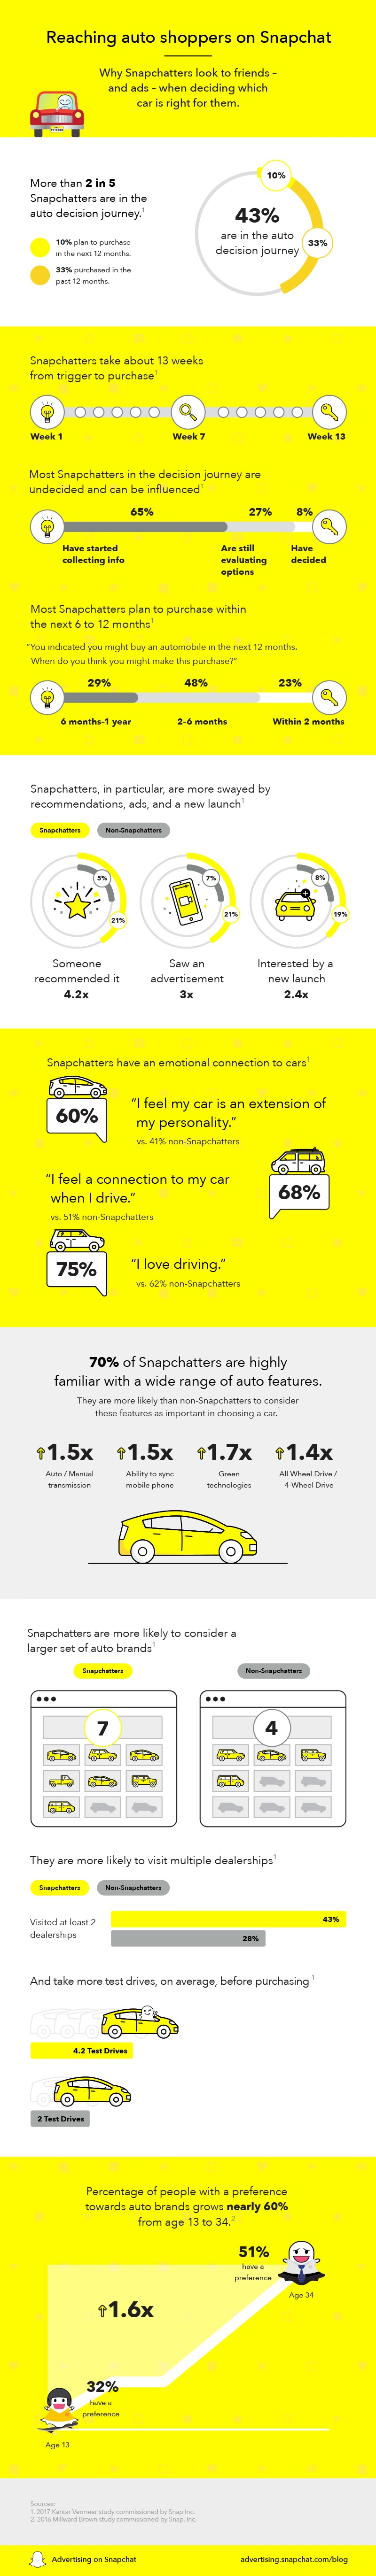 Reaching auto shoppers on #Snapchat [infographic]